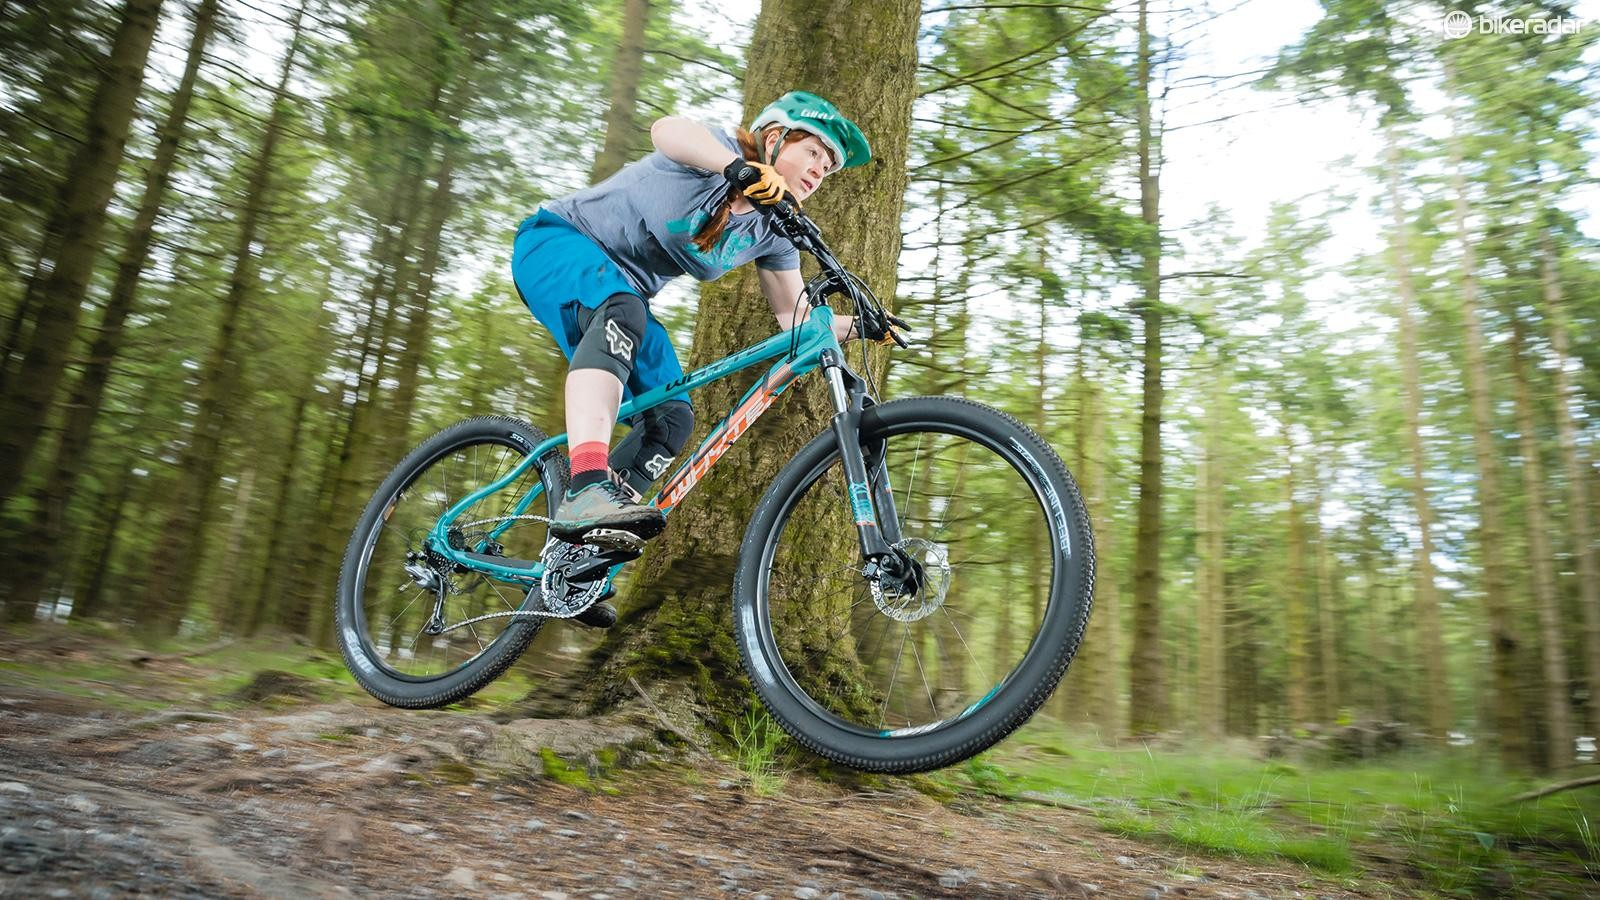 The Whyte 604 Compact — a stable, trail-focussed ride